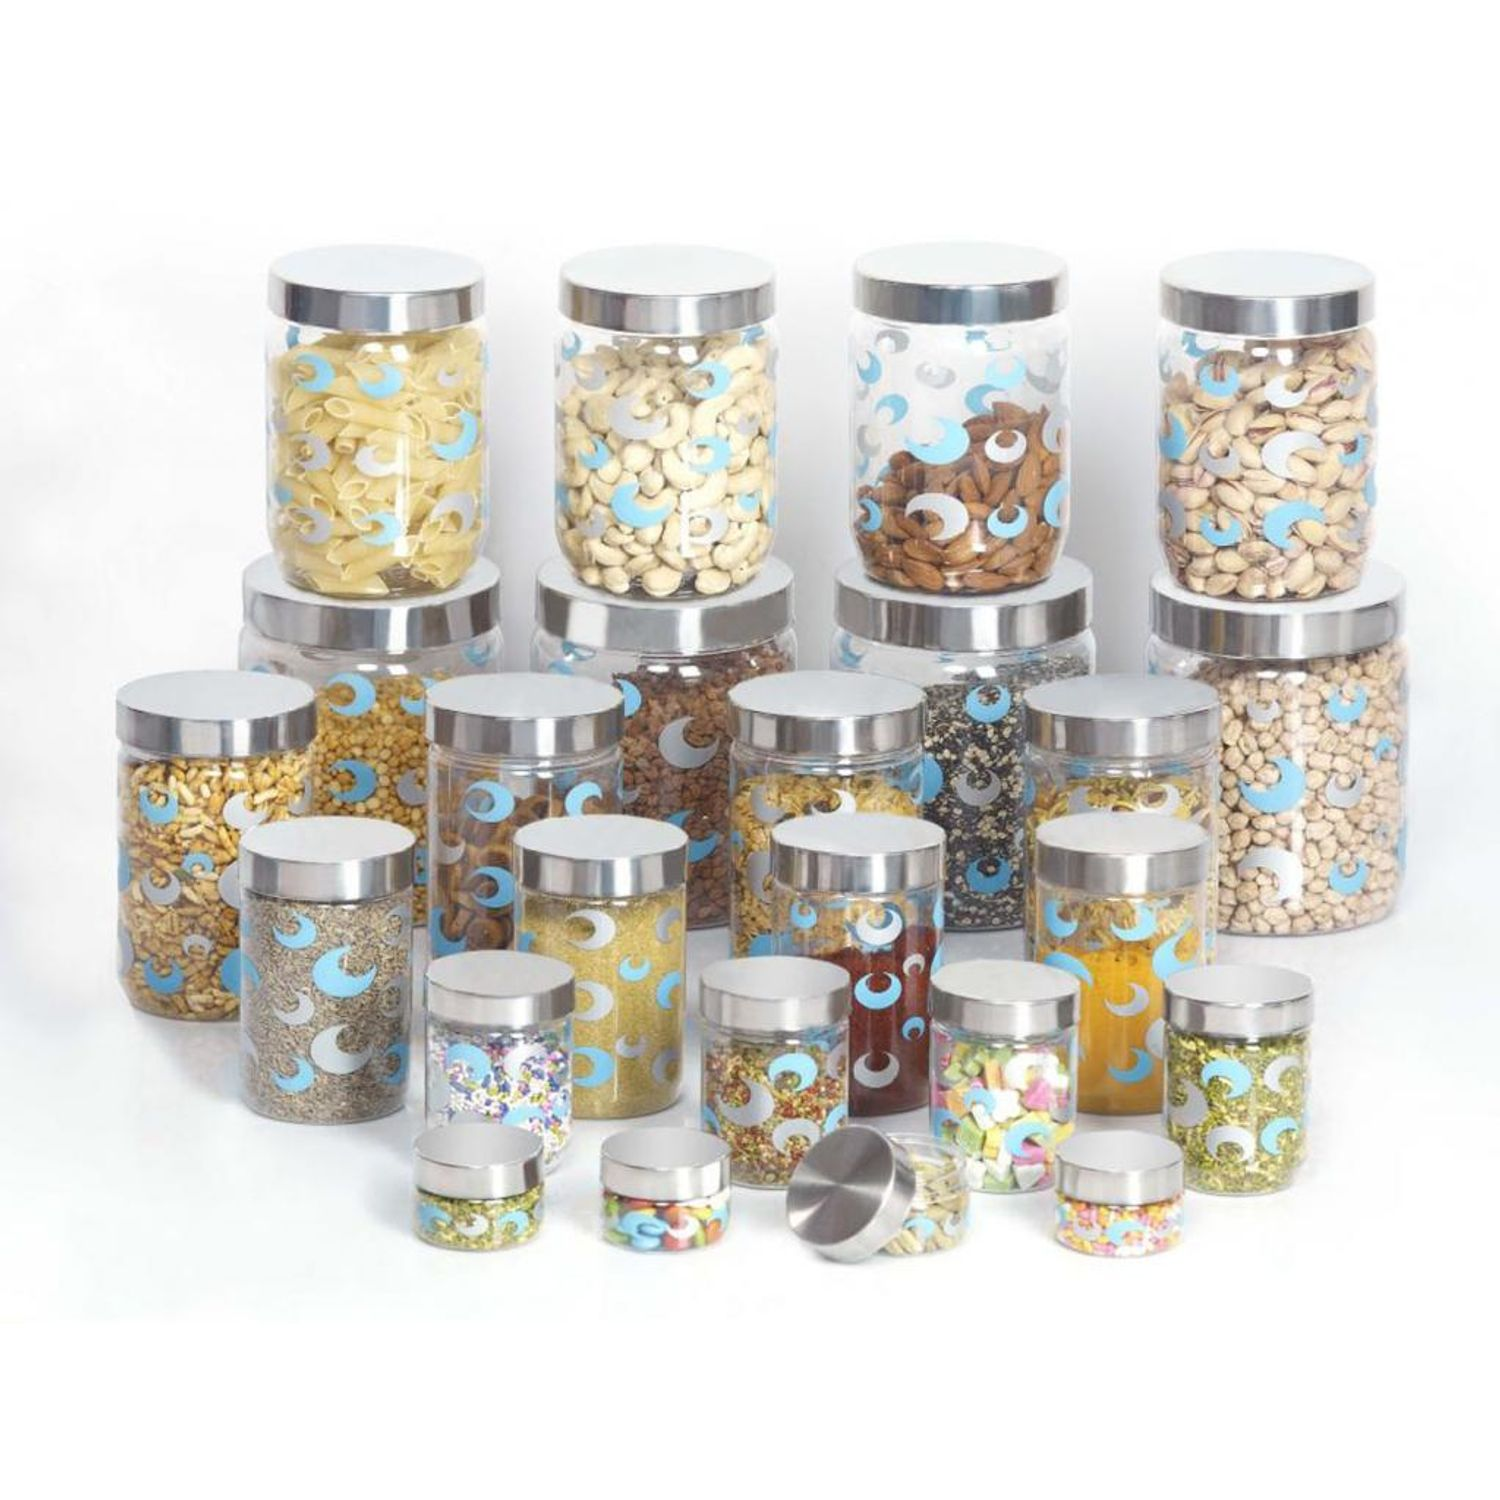 Buy Online Multi Purpose 24 Pcs Pet Kitchen Storage Container Set